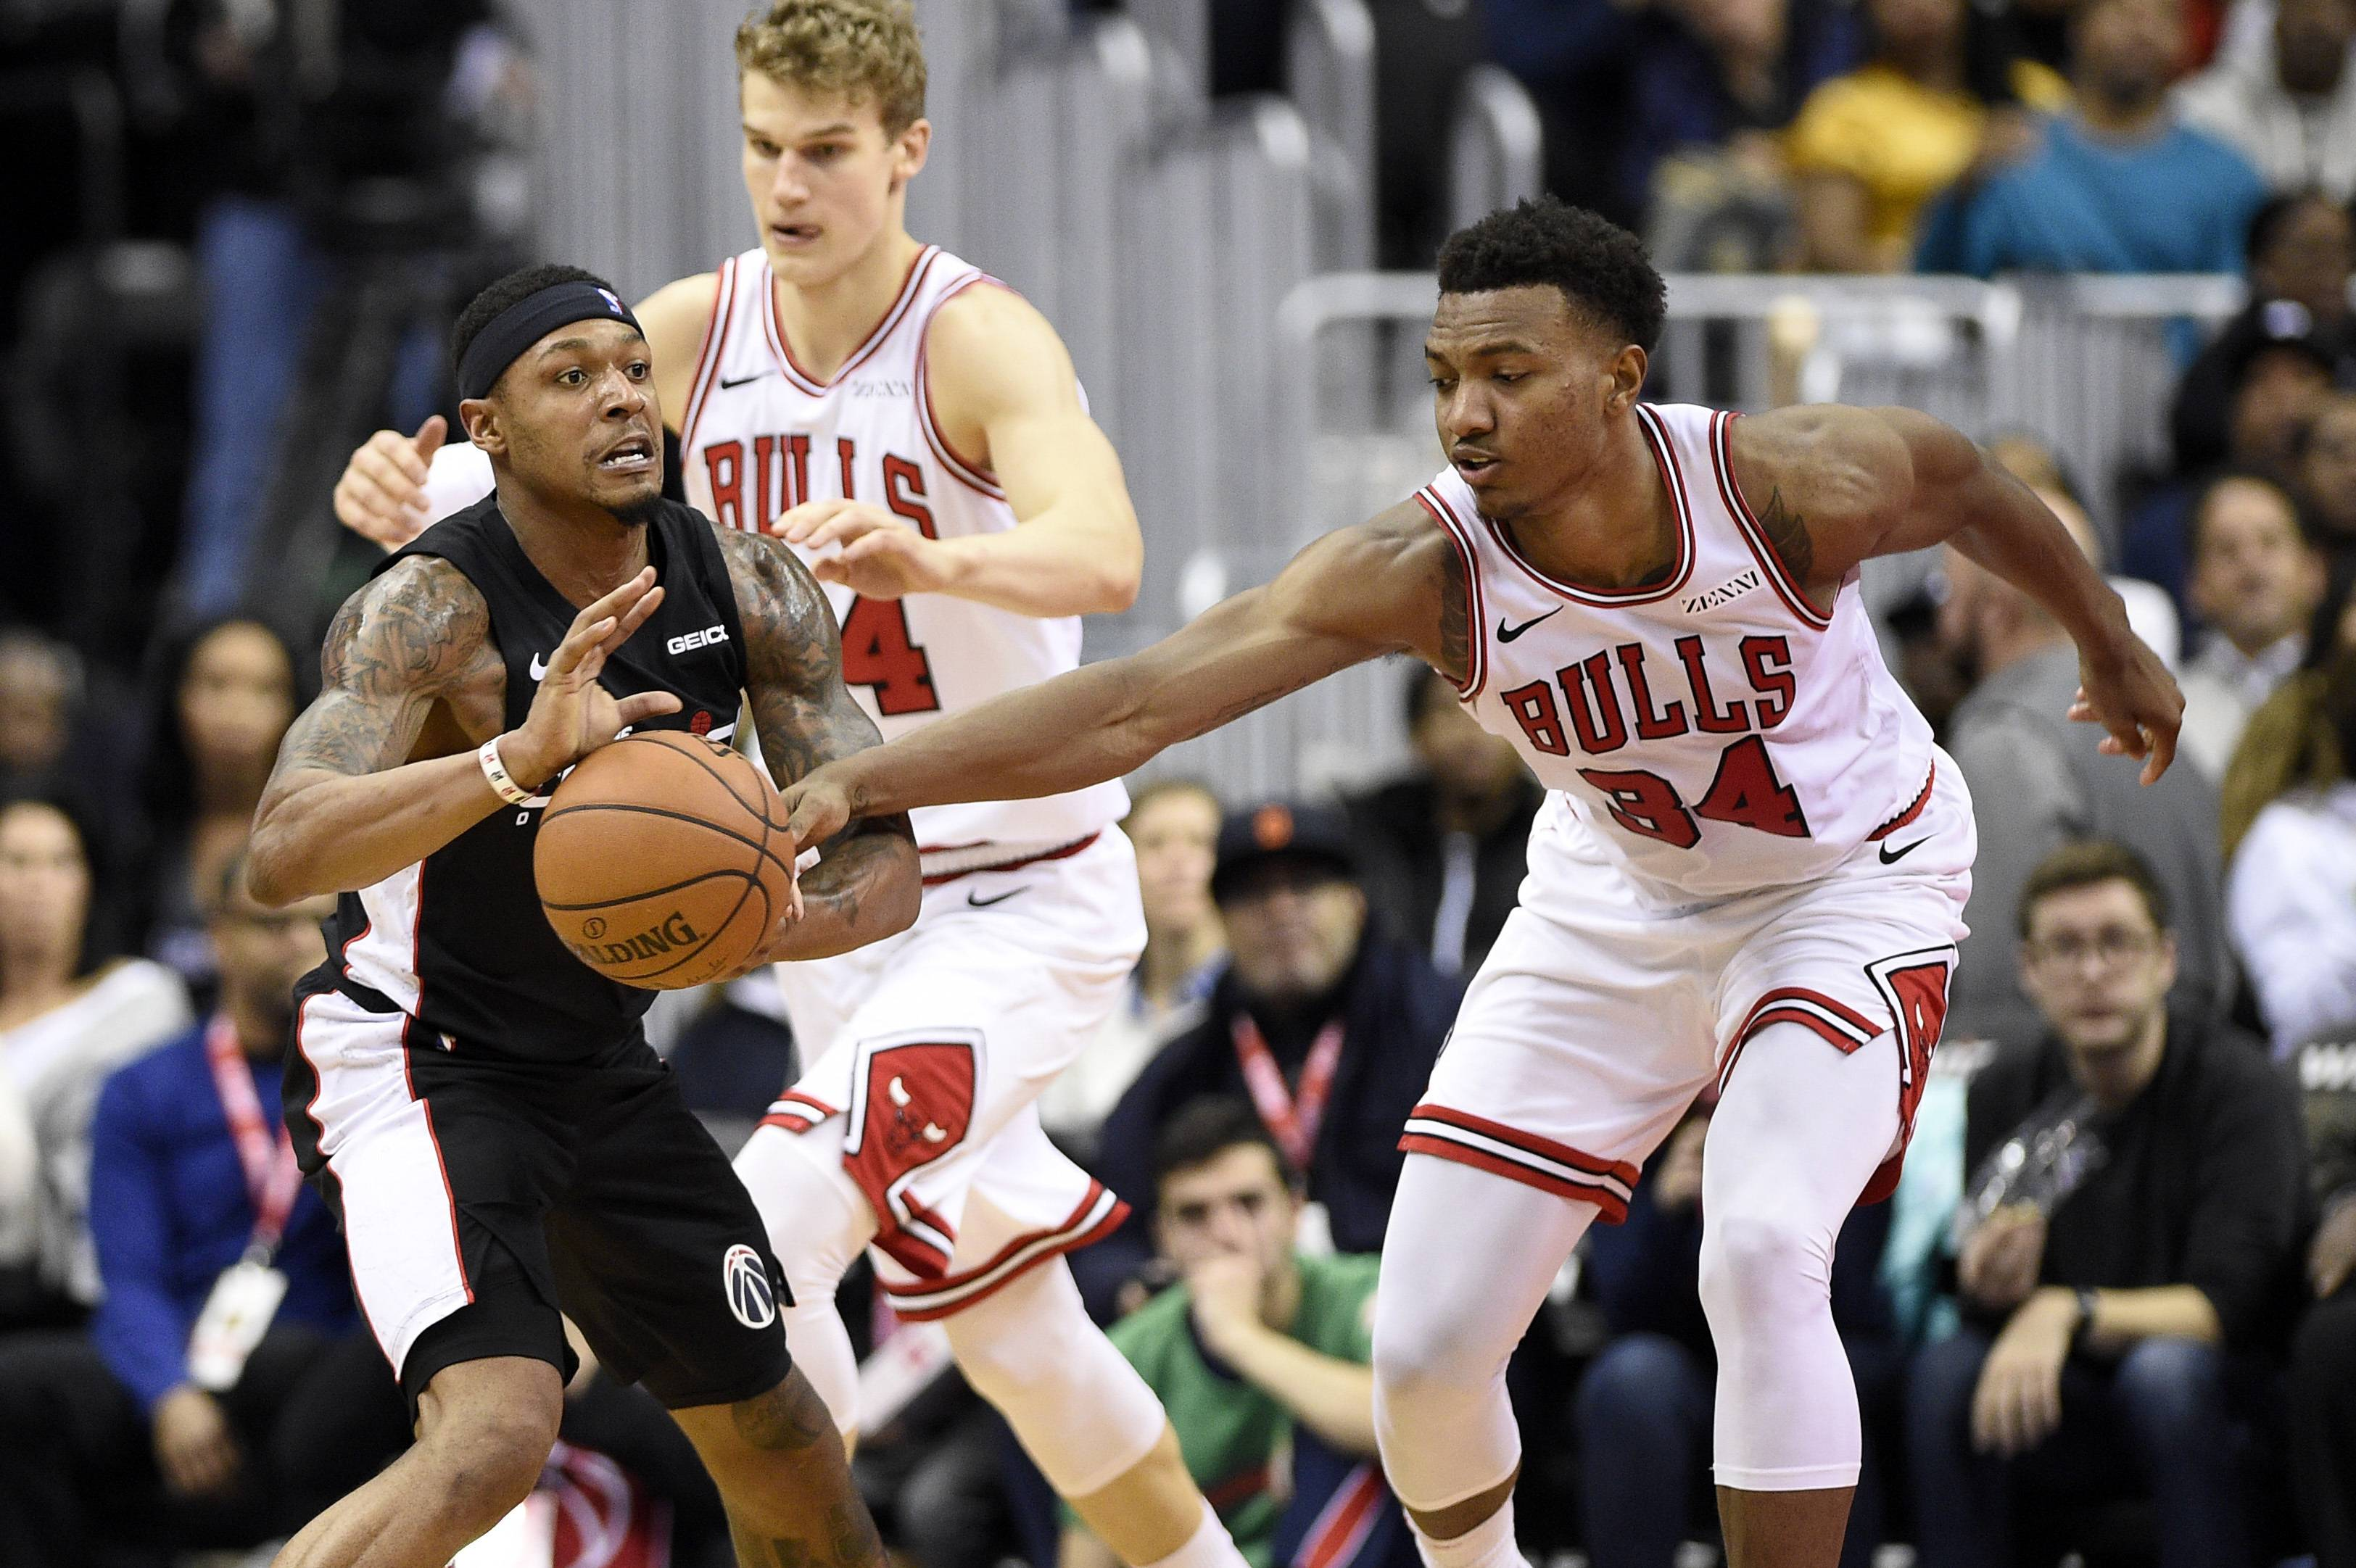 Chicago Bulls forward Wendell Carter Jr., here reaching for the ball against Washington's Bradley Beal in a game last month, could be lost for the season if he has surgery on his injured thumb.